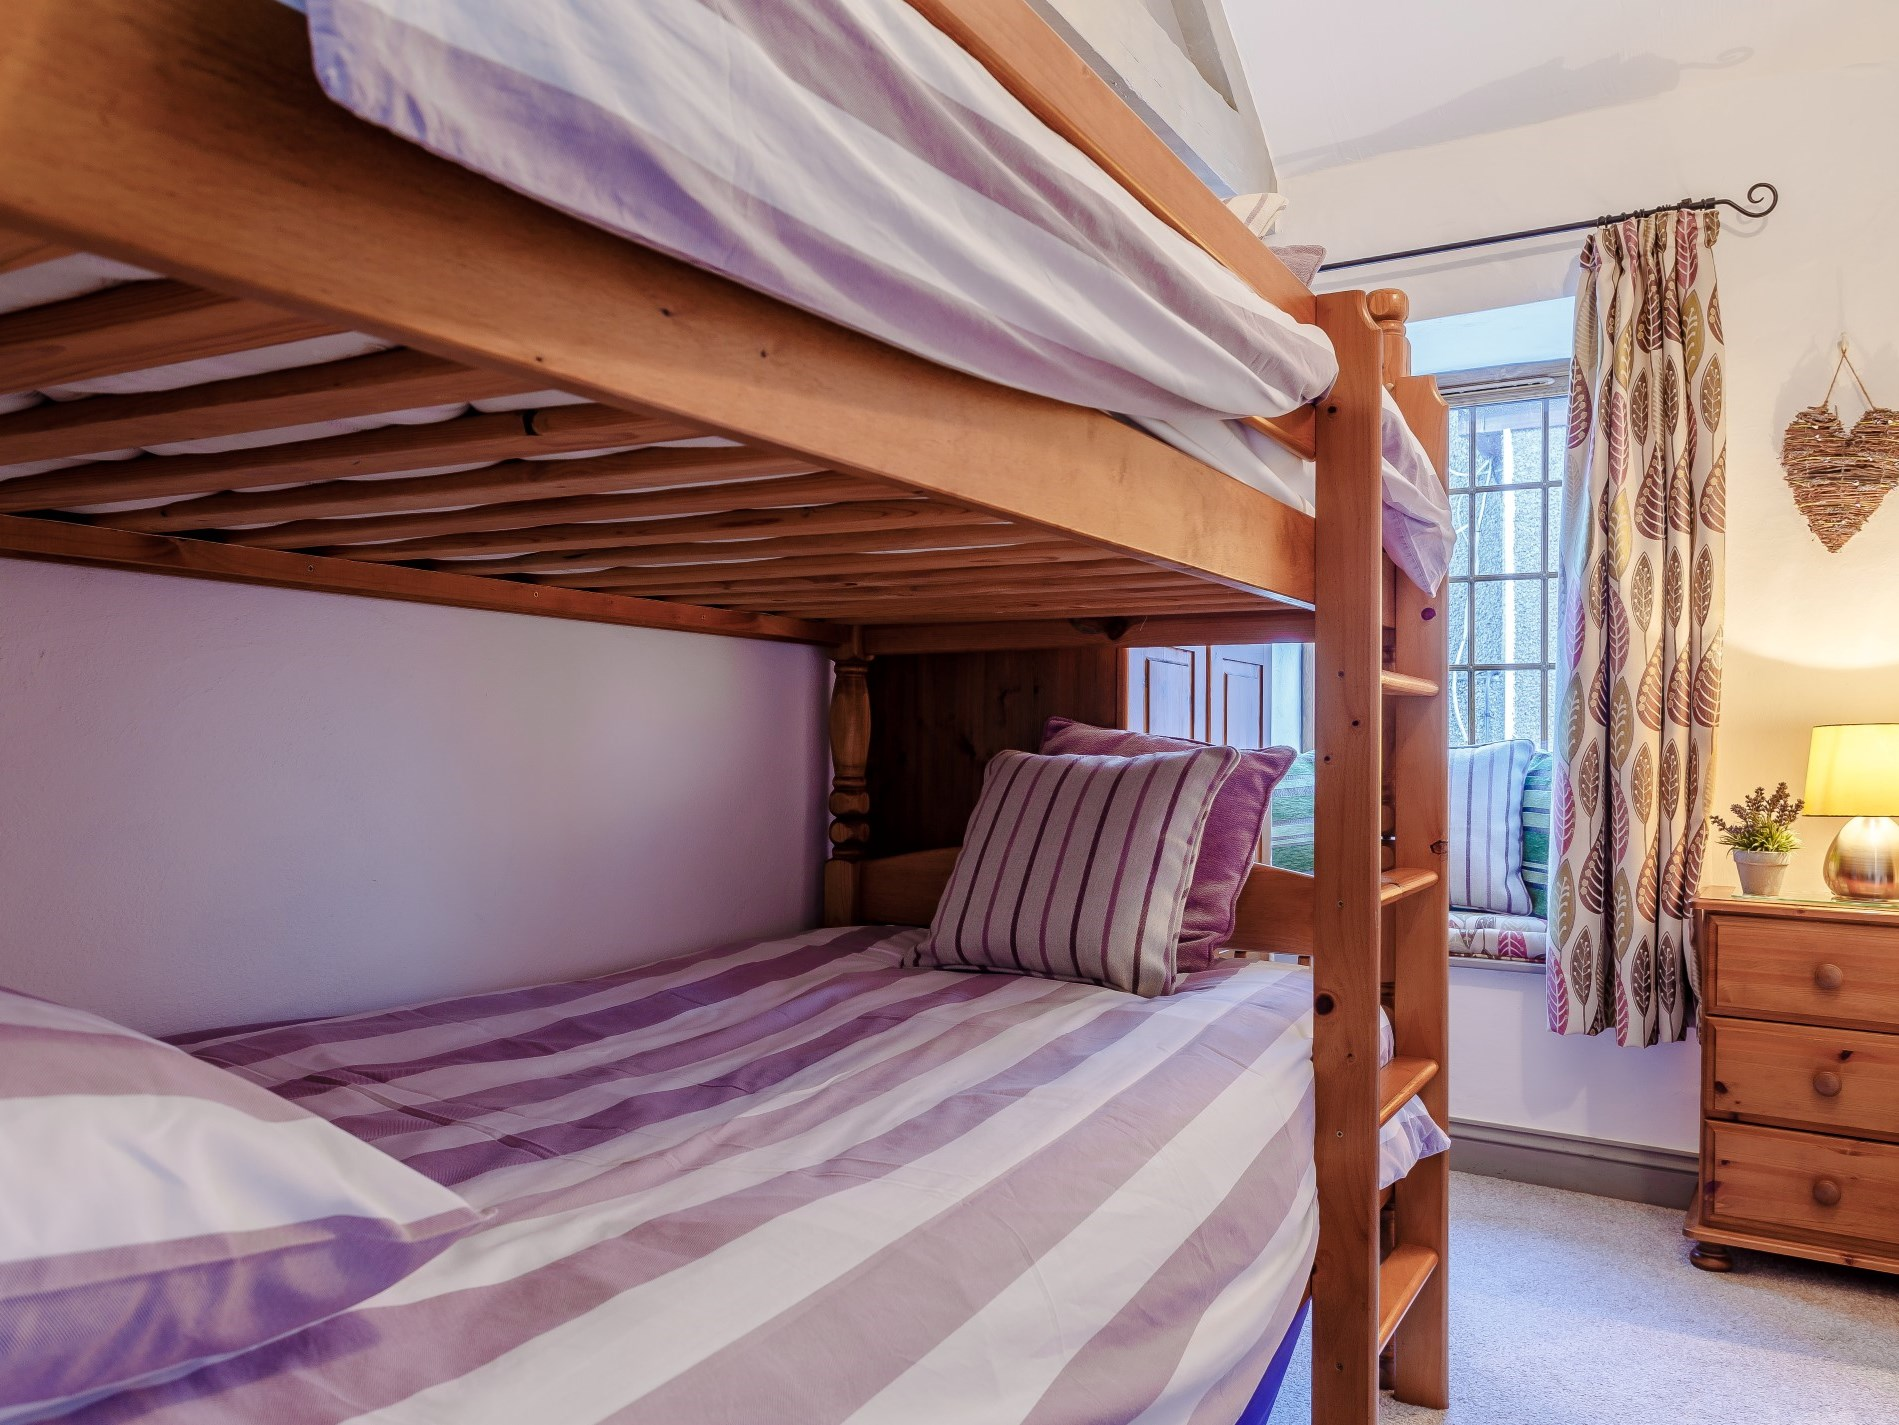 Bunk bed in the second bedroom - not just for kids